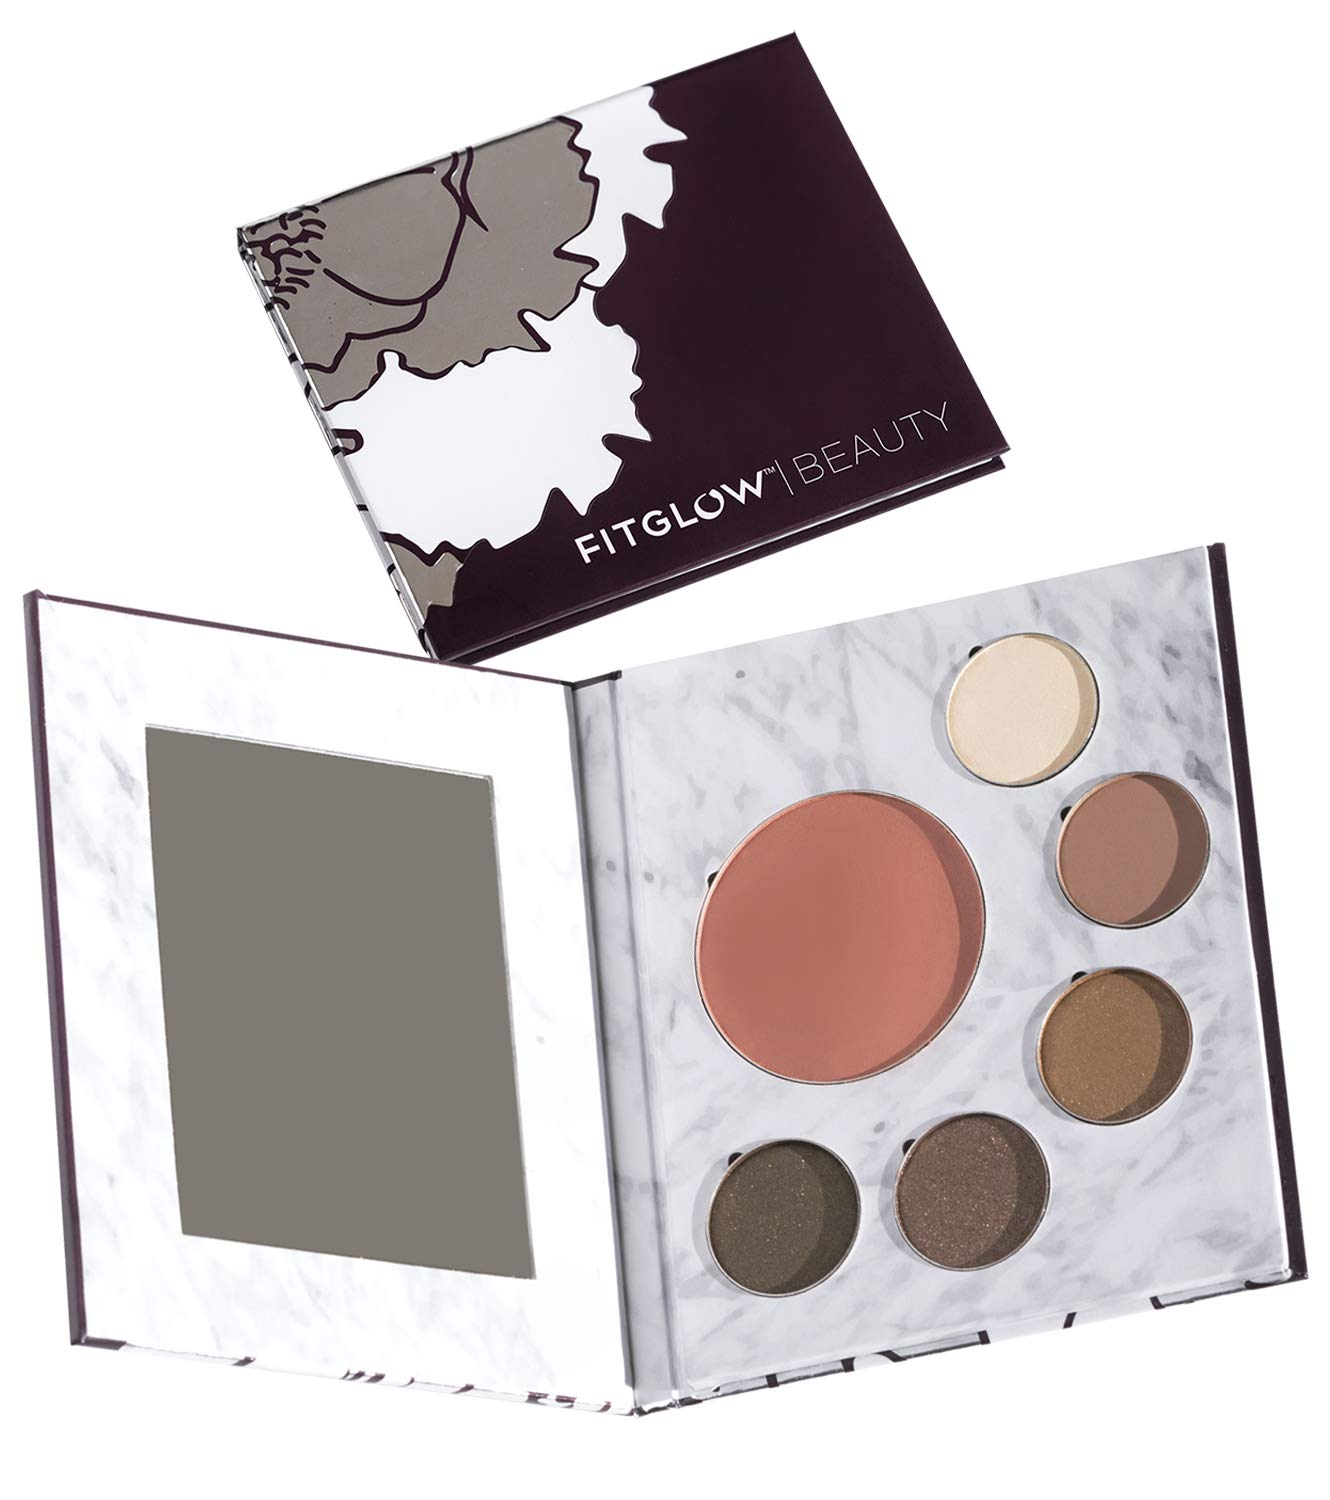 Fitglow Beauty Night Makeup Palette, Shimmer Set with Eyeshadow & Blush by FITGLOW